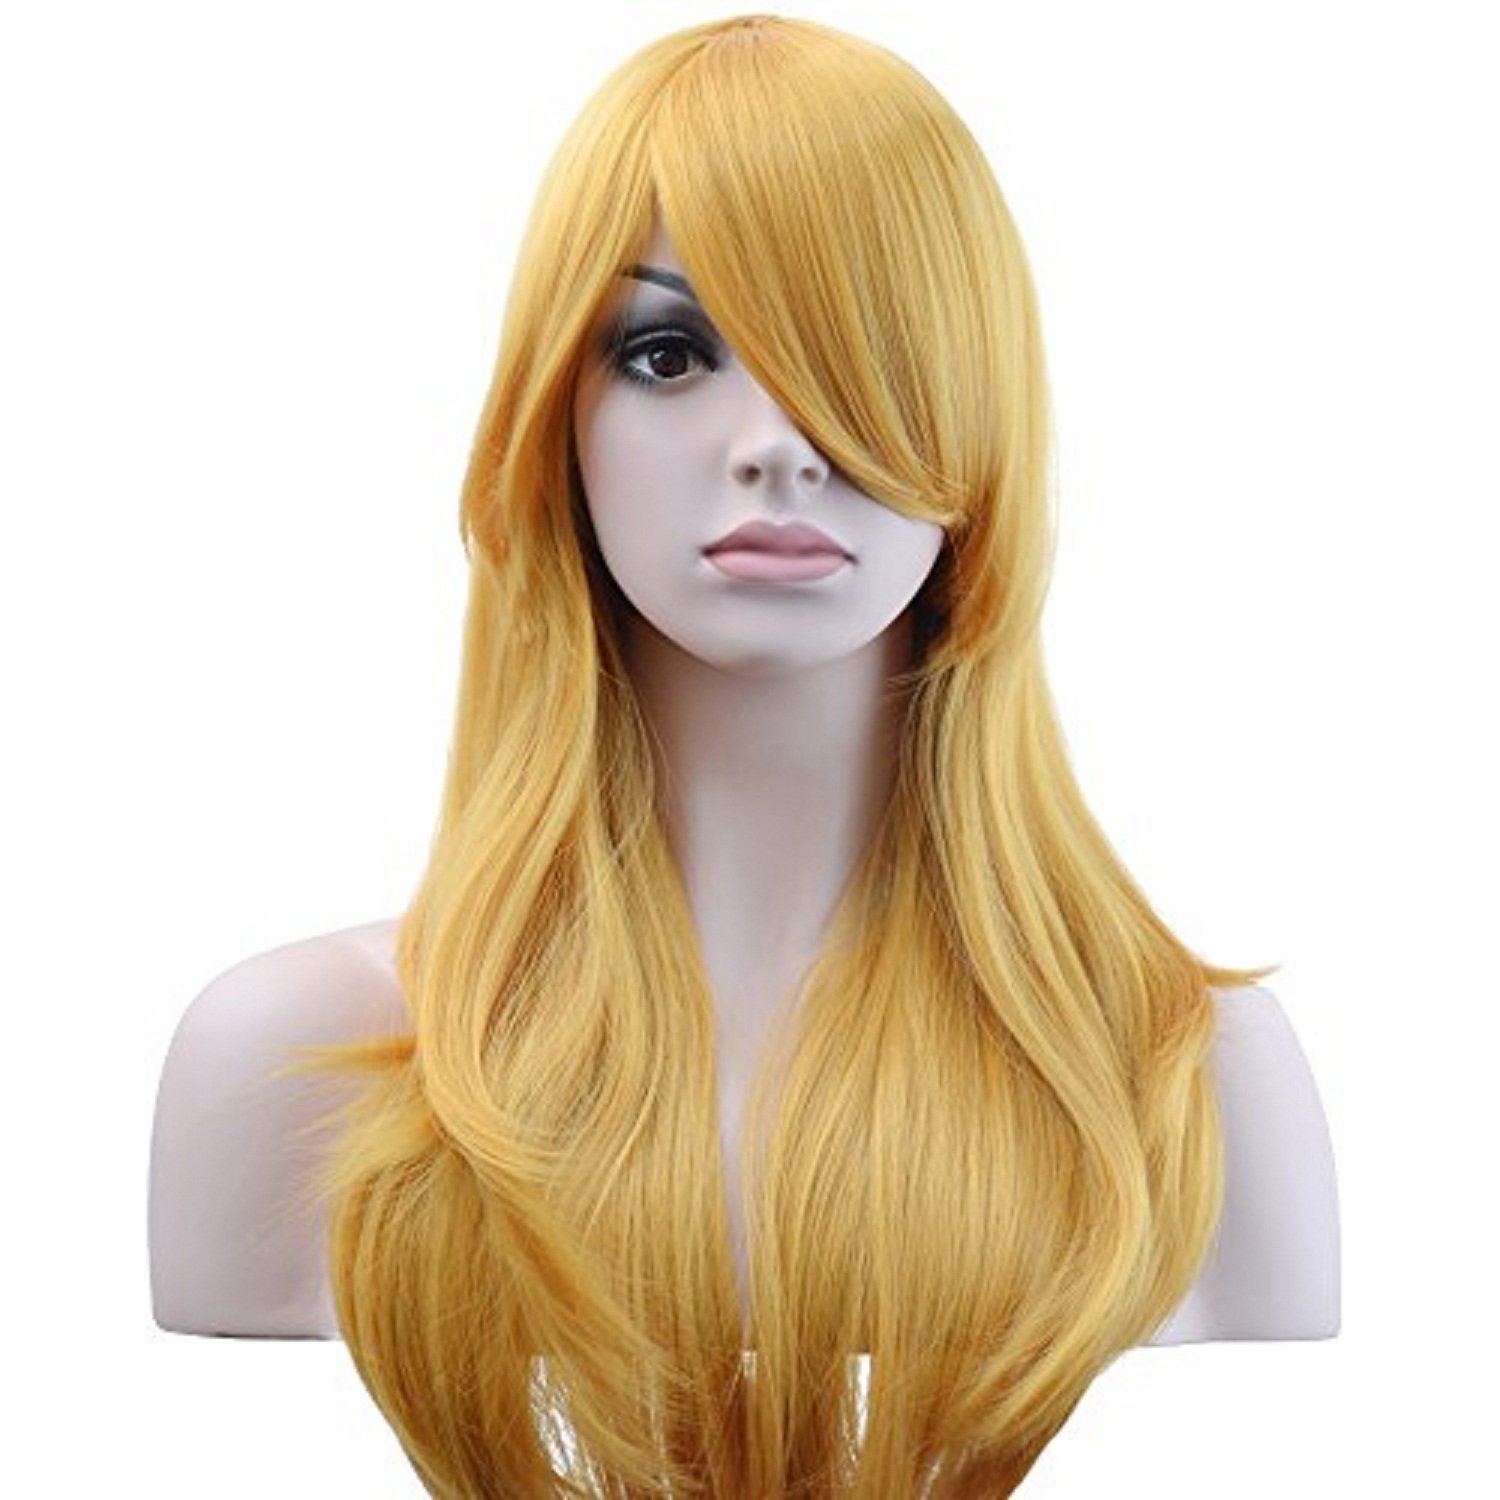 Our shop most popular Max 81% OFF YOPO 28'' Blonde Wig for Women Costume Wa Long Party Cosplay Big